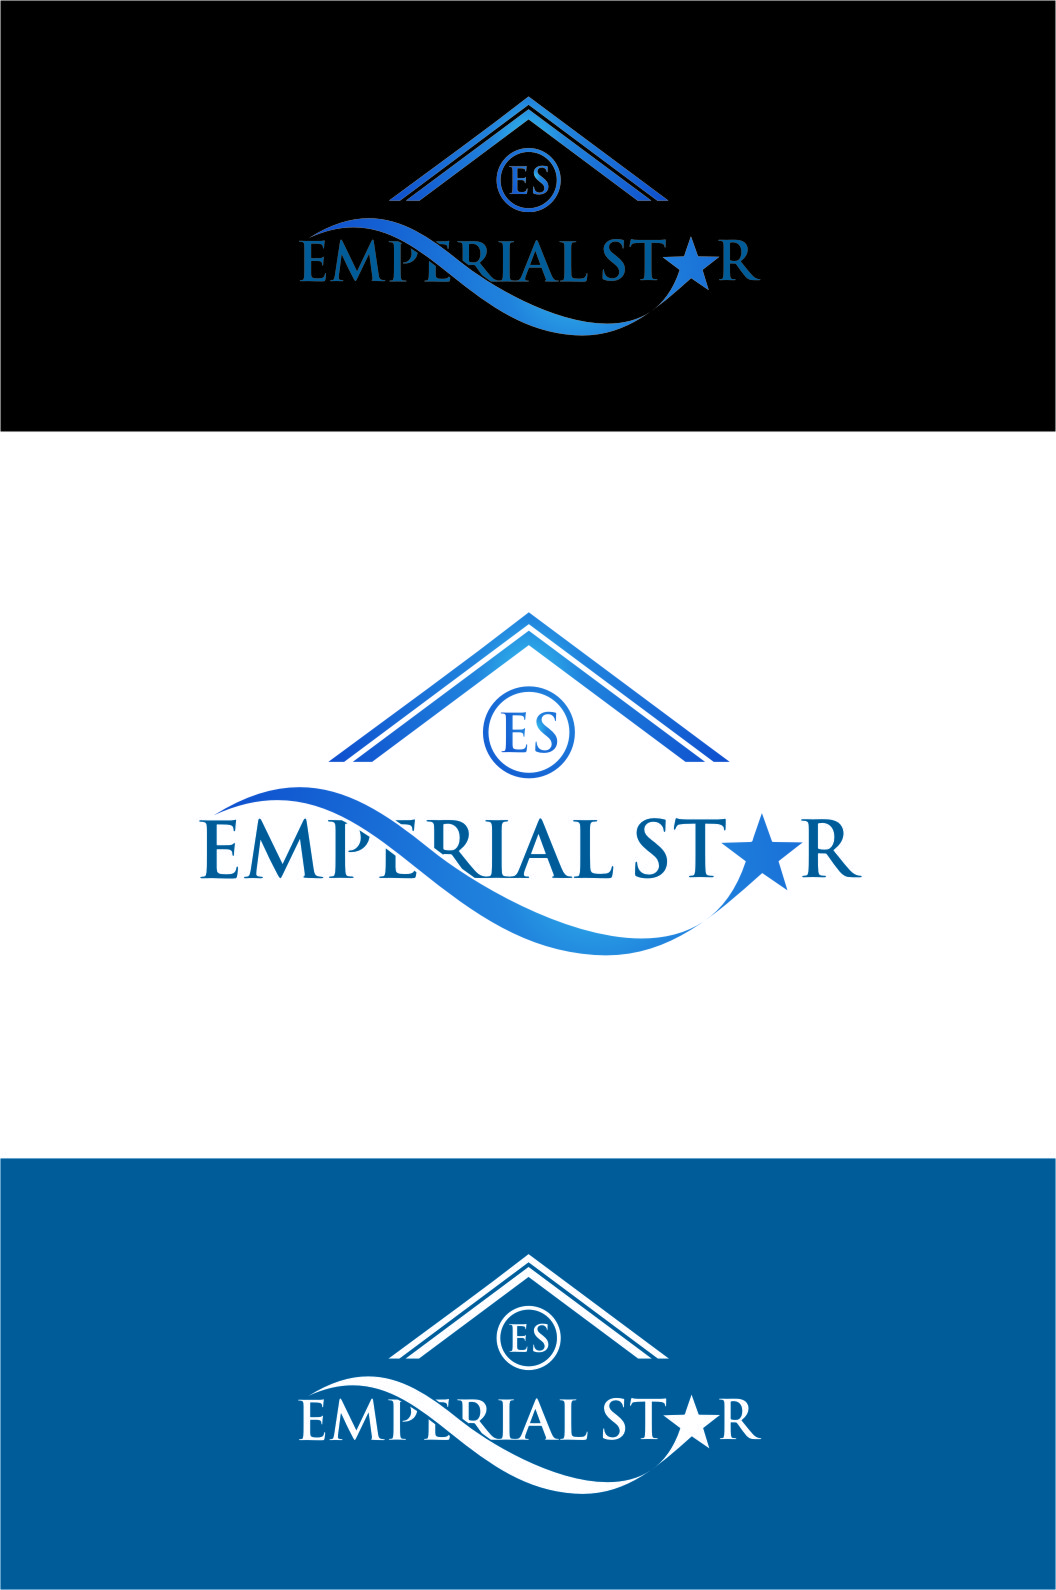 Logo Design by Ngepet_art - Entry No. 126 in the Logo Design Contest Emperial Star Logo Design.